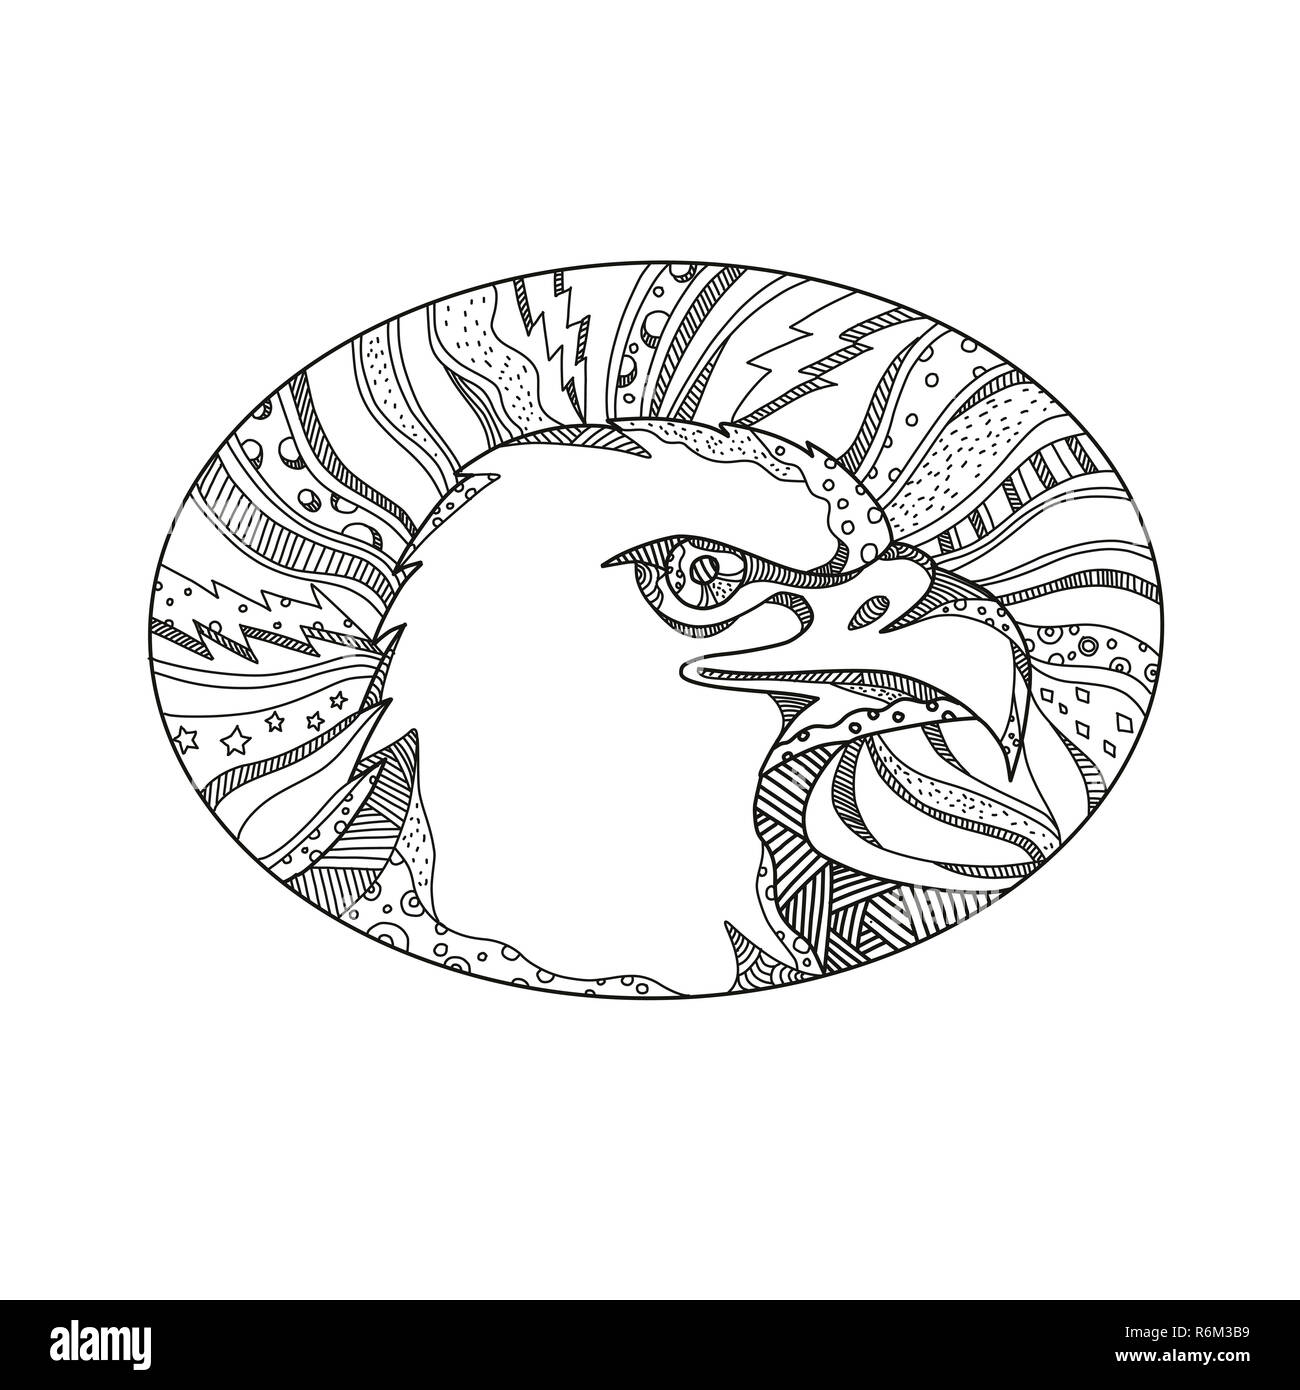 Bald Eagle Head Doodle Art Stock Photo: 227864429 - Alamy on eagle food chain diagram, eagle anatomy diagram, bald head coloring page, grizzly bear diagram, common snapping turtle diagram, eagle skeleton diagram, gray squirrel diagram, eagle life cycle diagram, bald eagel, bird diagram, african wild dog diagram, haast's eagle diagram, wolf diagram, polar bear diagram, black eagle diagram, golden eagle diagram, raccoon diagram, chipmunk diagram, ruby-throated hummingbird diagram, owl diagram,